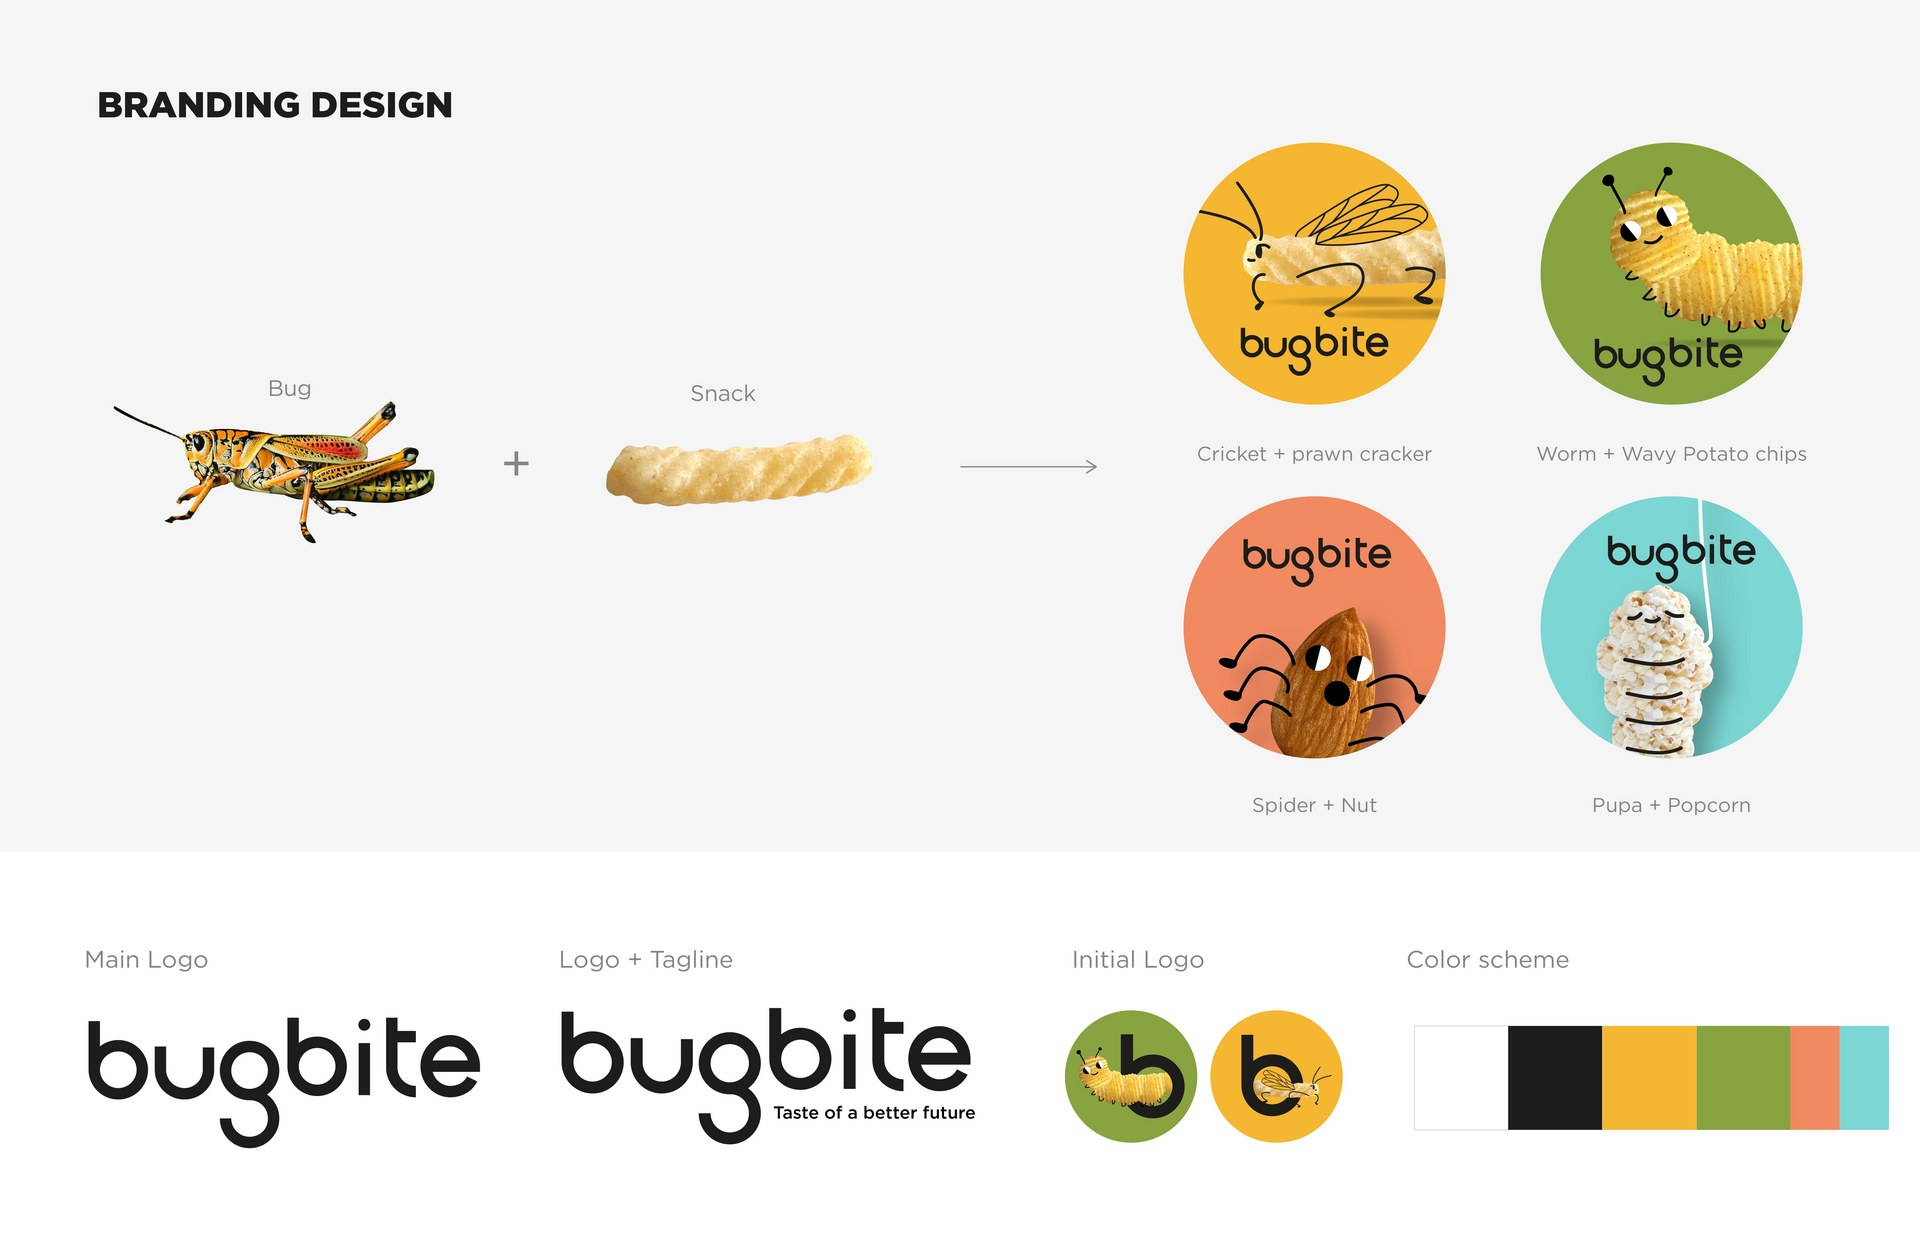 Branding design — Inspired by the combination of bugs and snacks, these key visuals represent cute, fun and amble characteristic